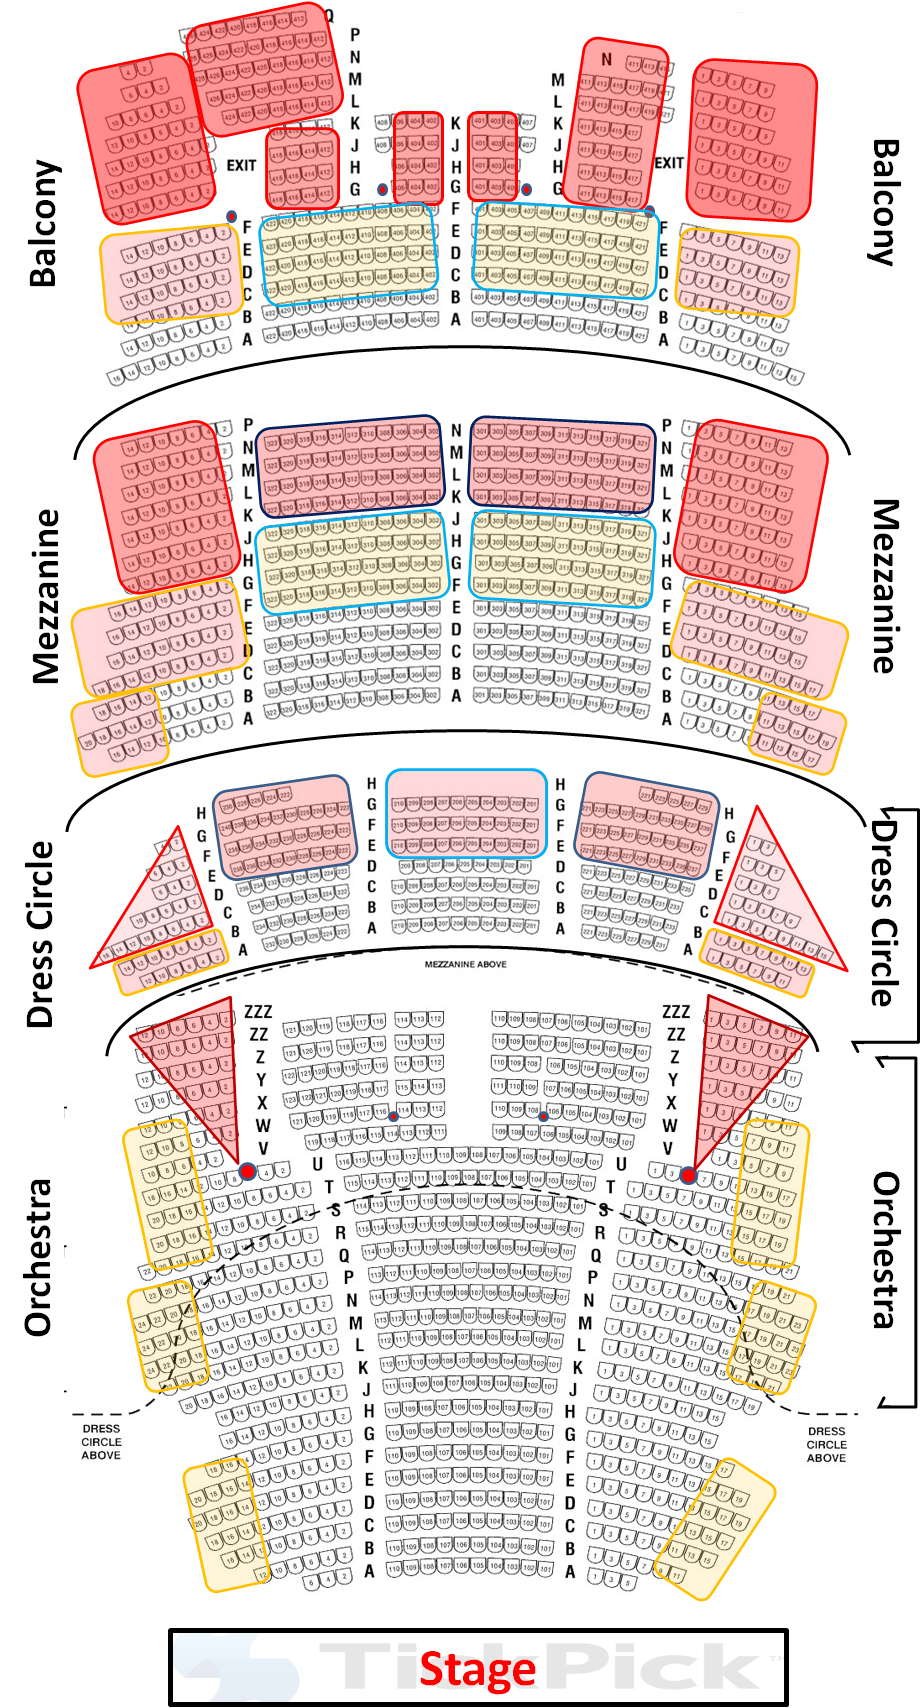 Detailed bank of america theater seating chart where it   best to sit also cibc seat views travel pinterest rh